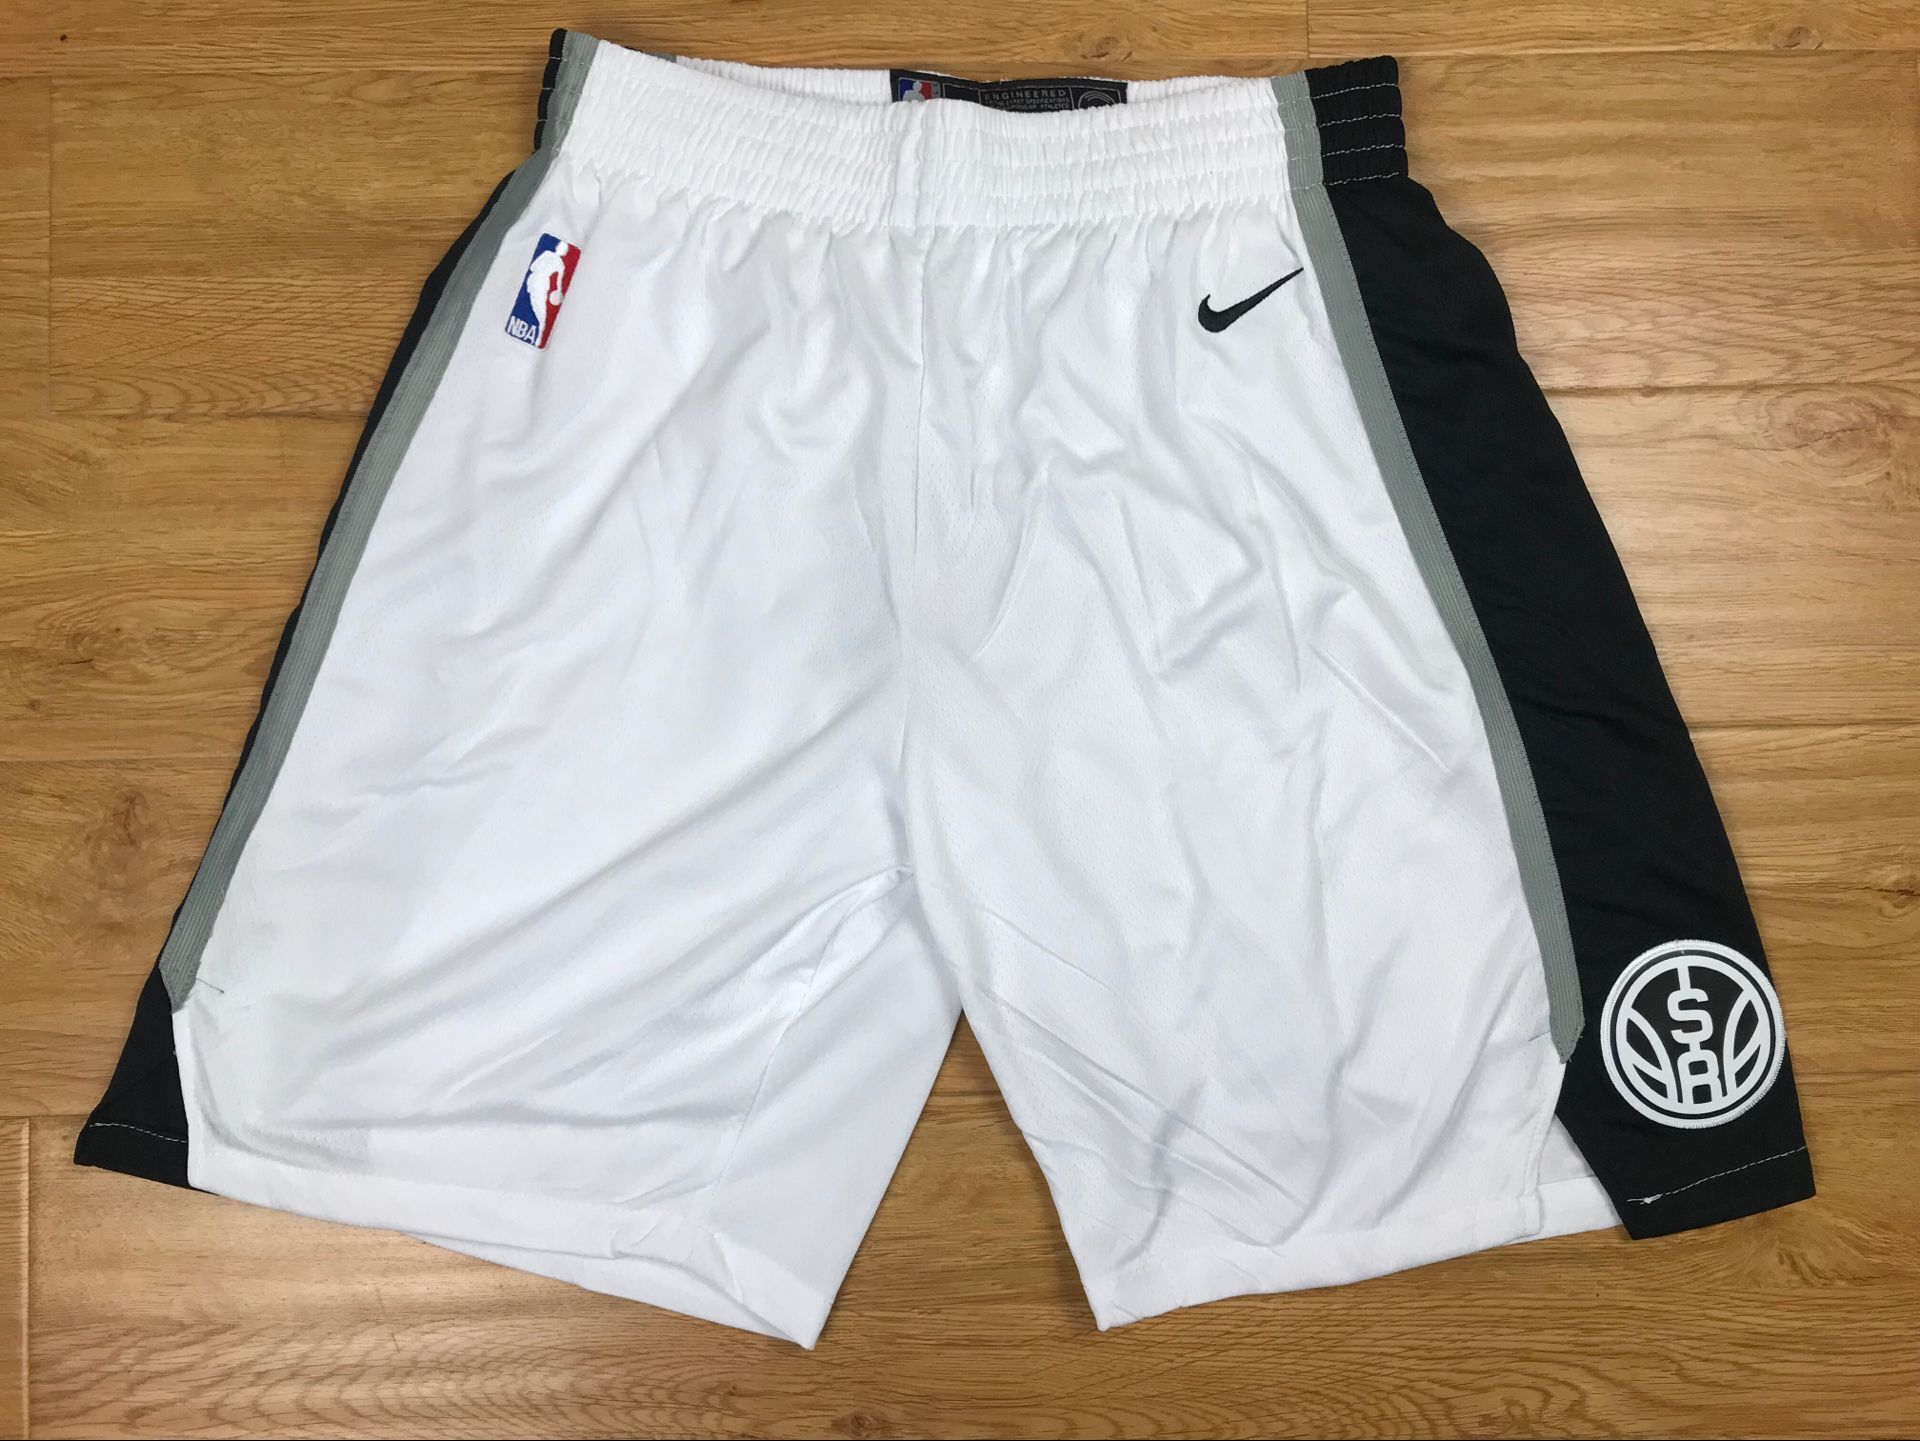 Spurs White Nike Authentic Shorts